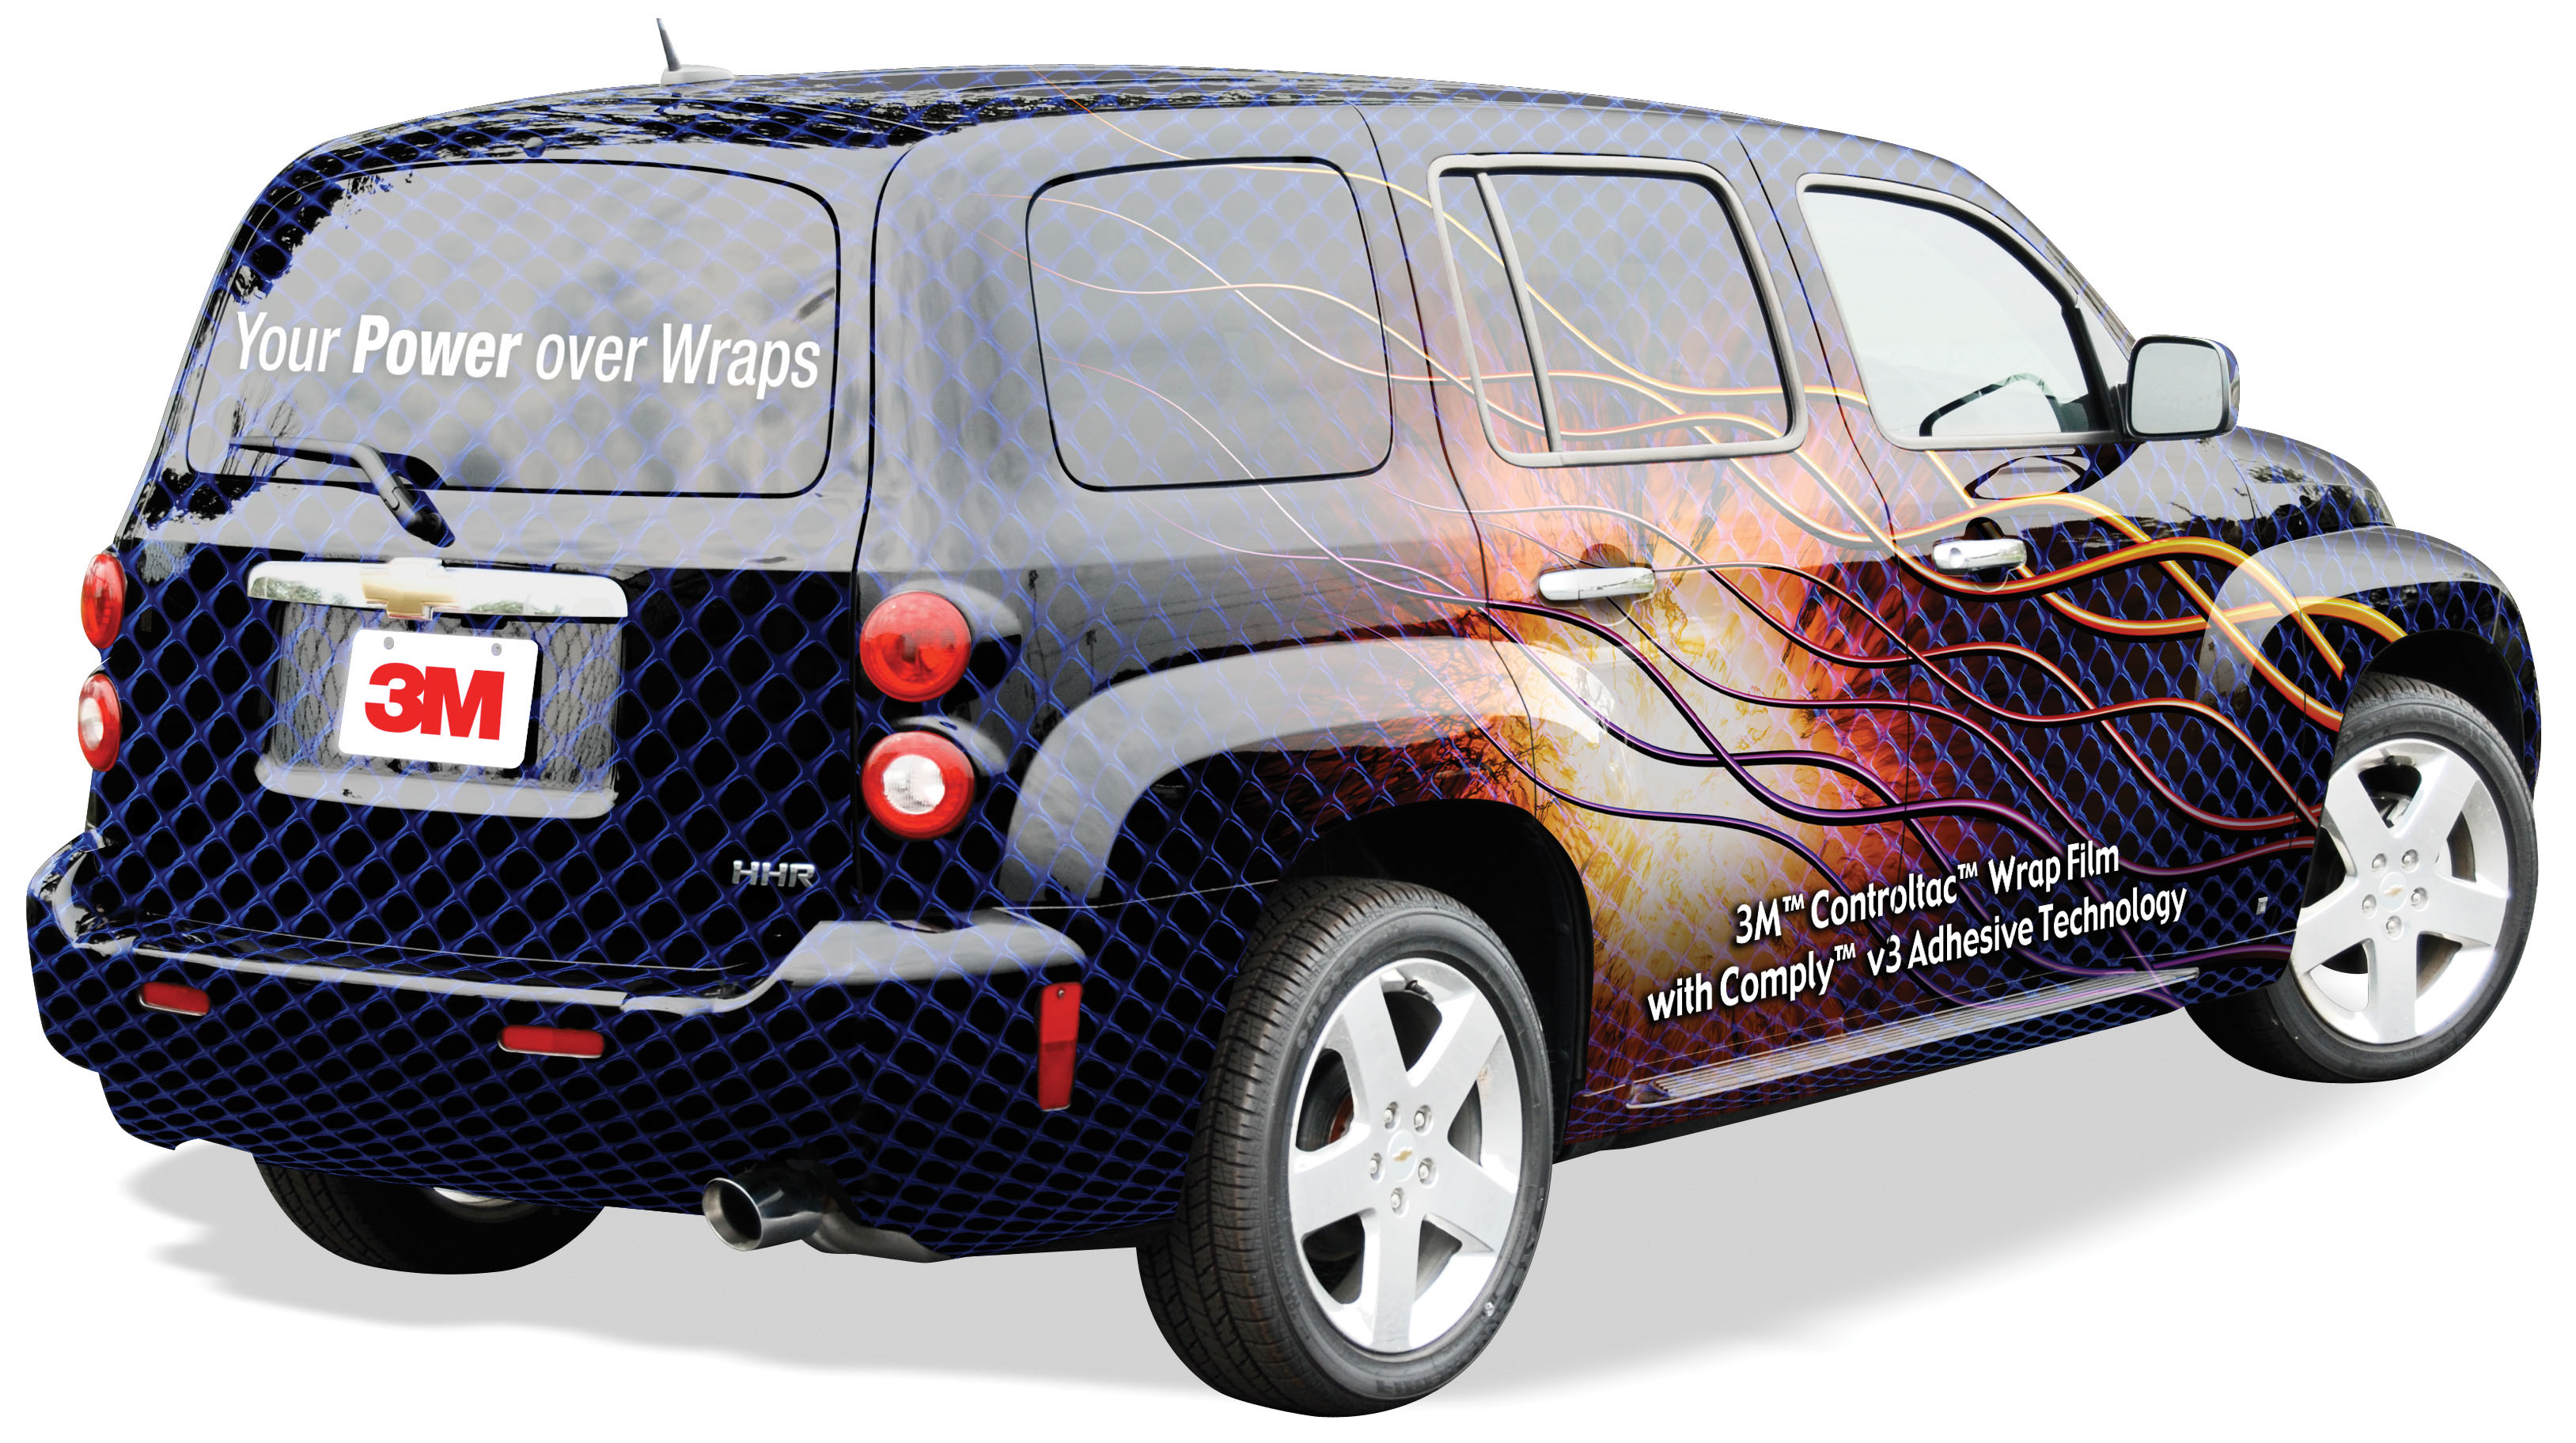 Vehicle Wraps Stick With Quality For Perfromance